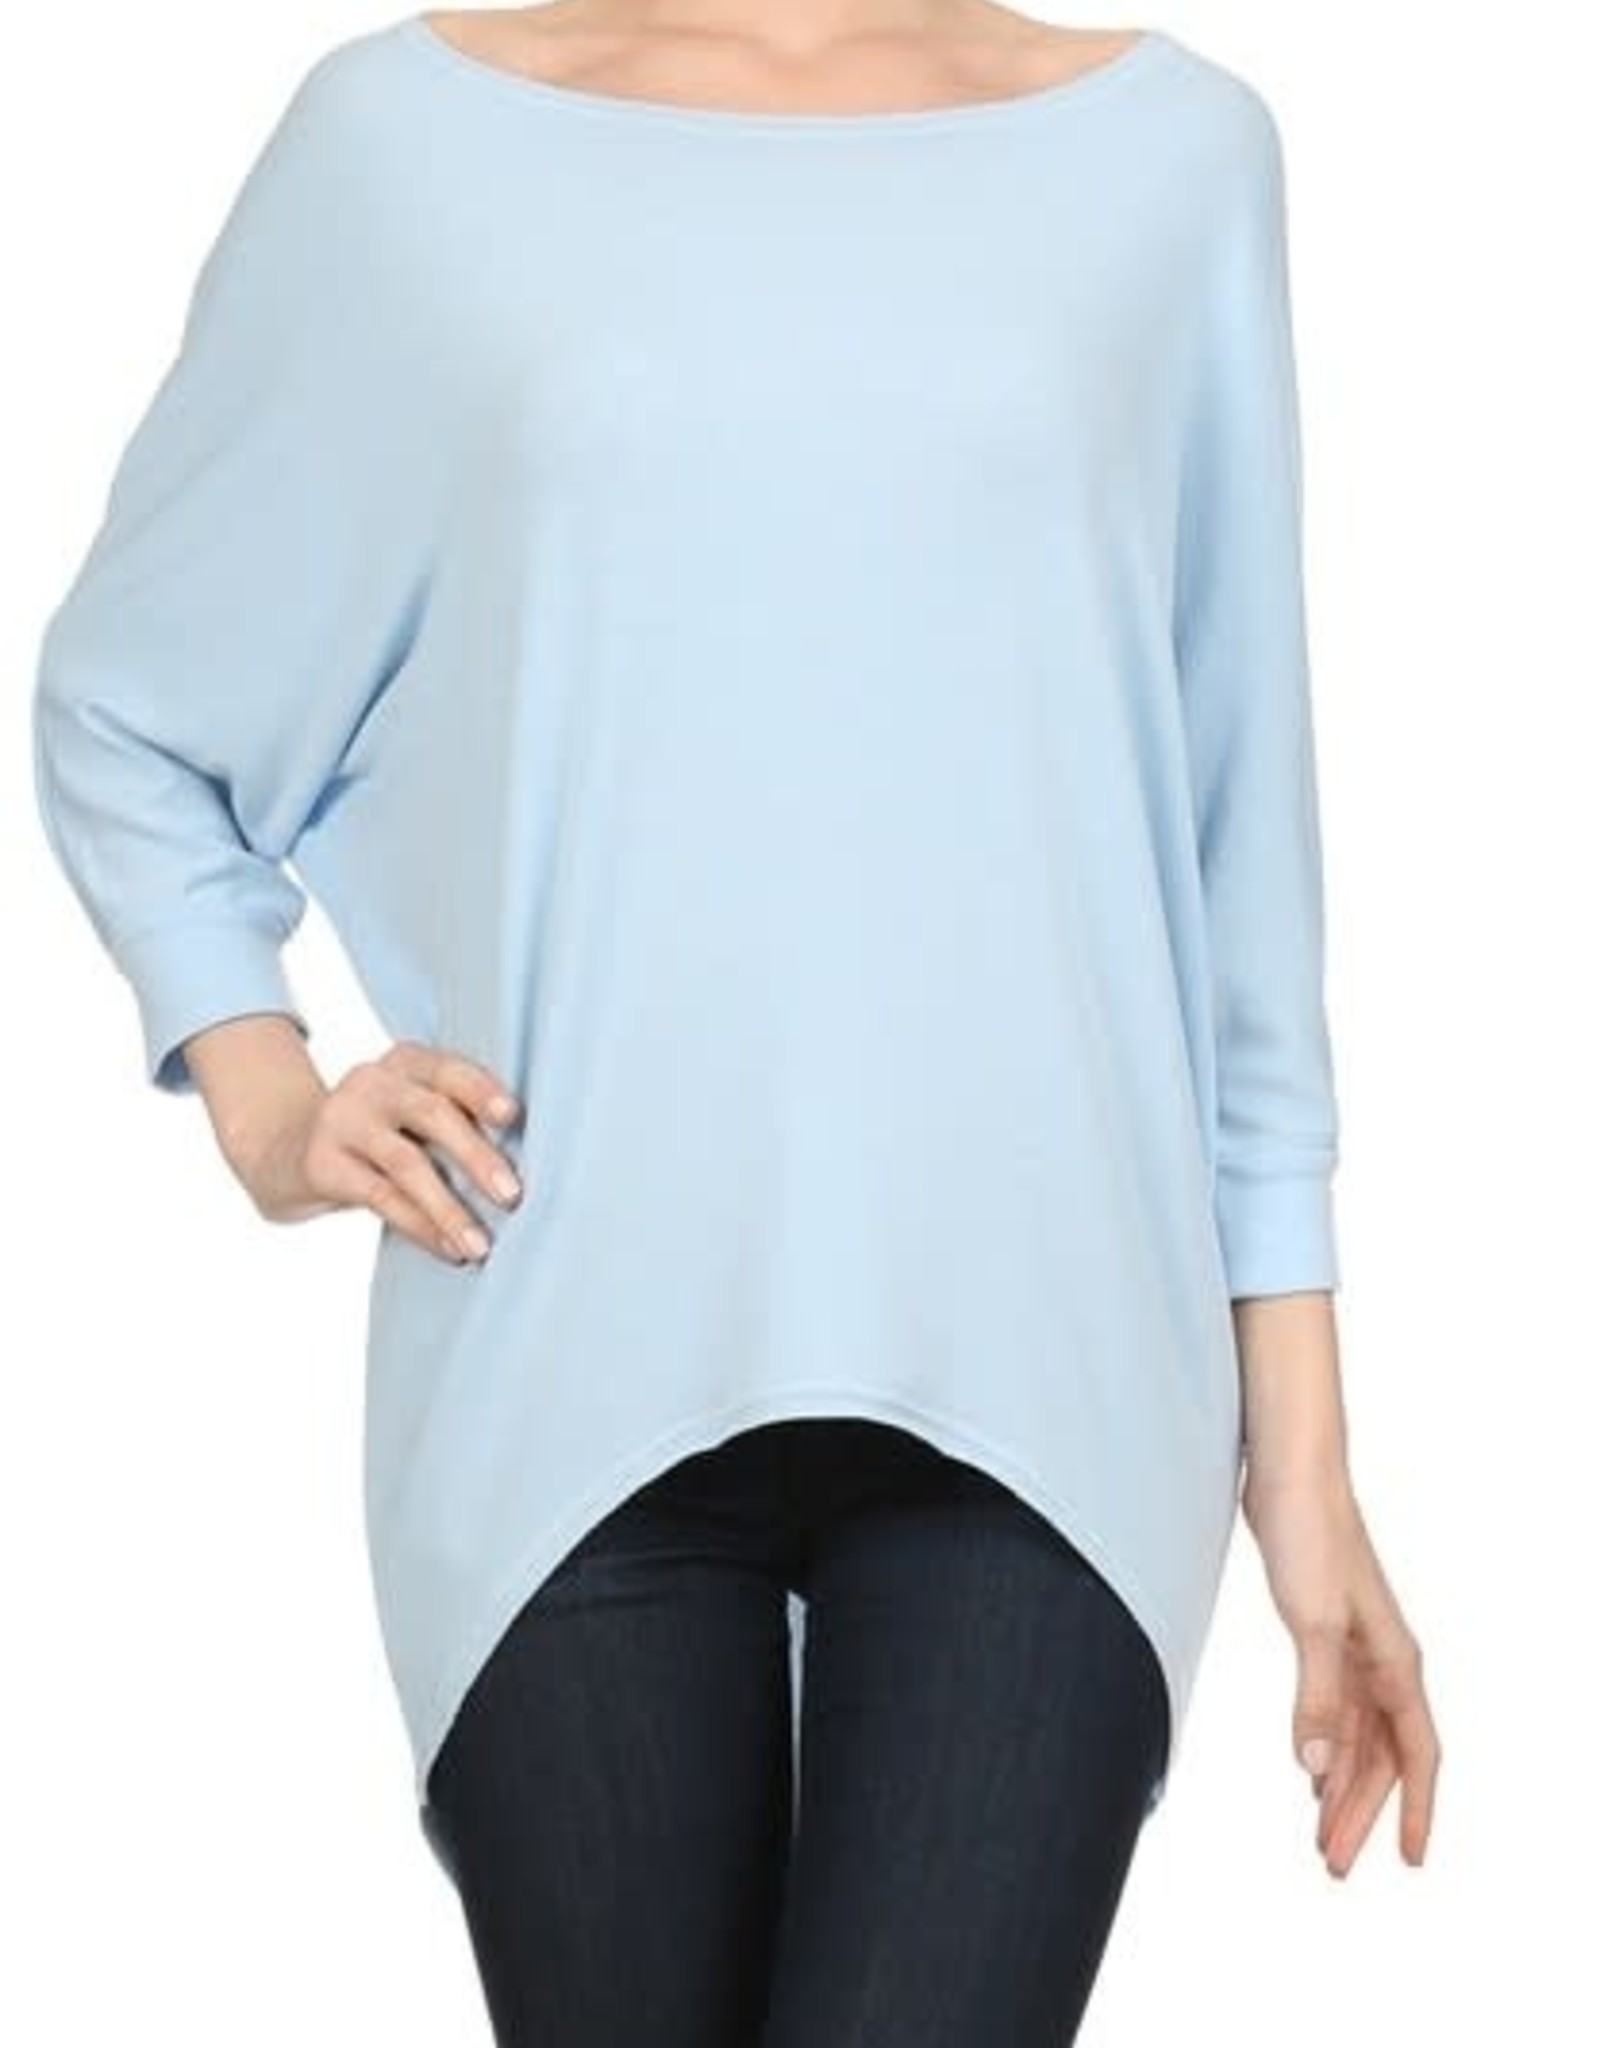 Miss Bliss Scoop Neck Dolman Sleeve Top- Baby Blue